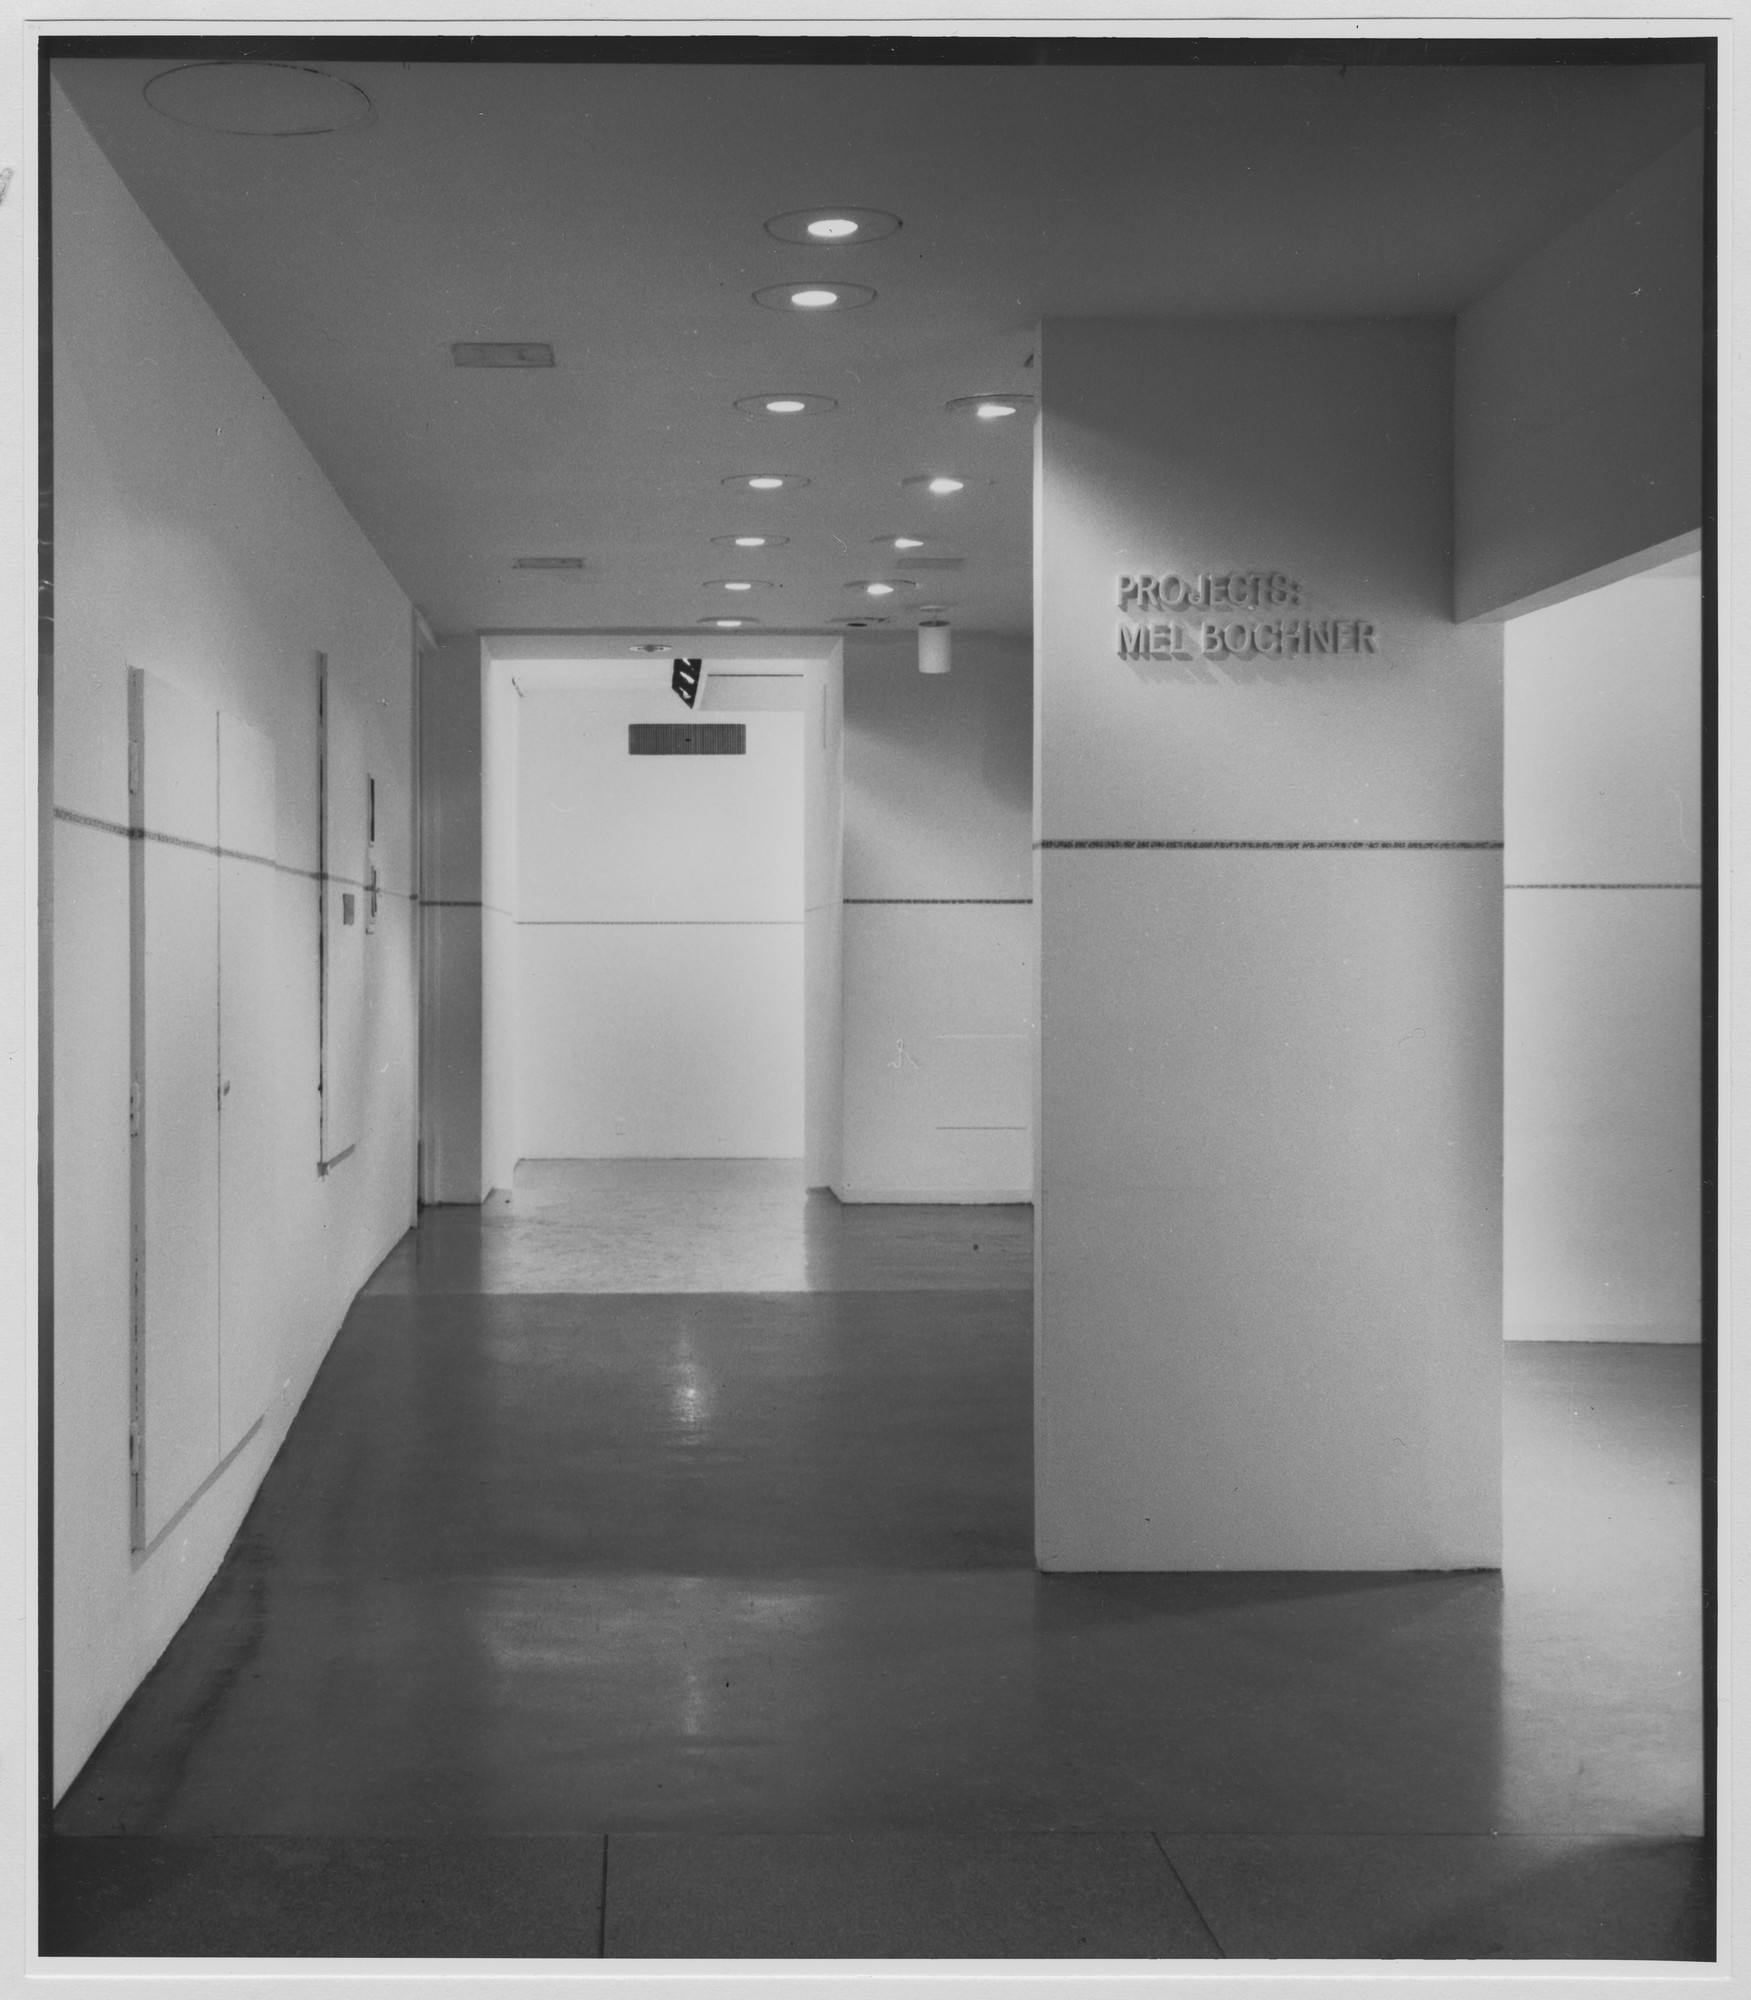 "Installation view of the exhibition, ""Projects: Mel Bochner."" August 9, 1971–September 20, 1971. Photographic Archive. The Museum of Modern Art Archives, New York. IN977.1. Photograph by Eric Pollitzer."